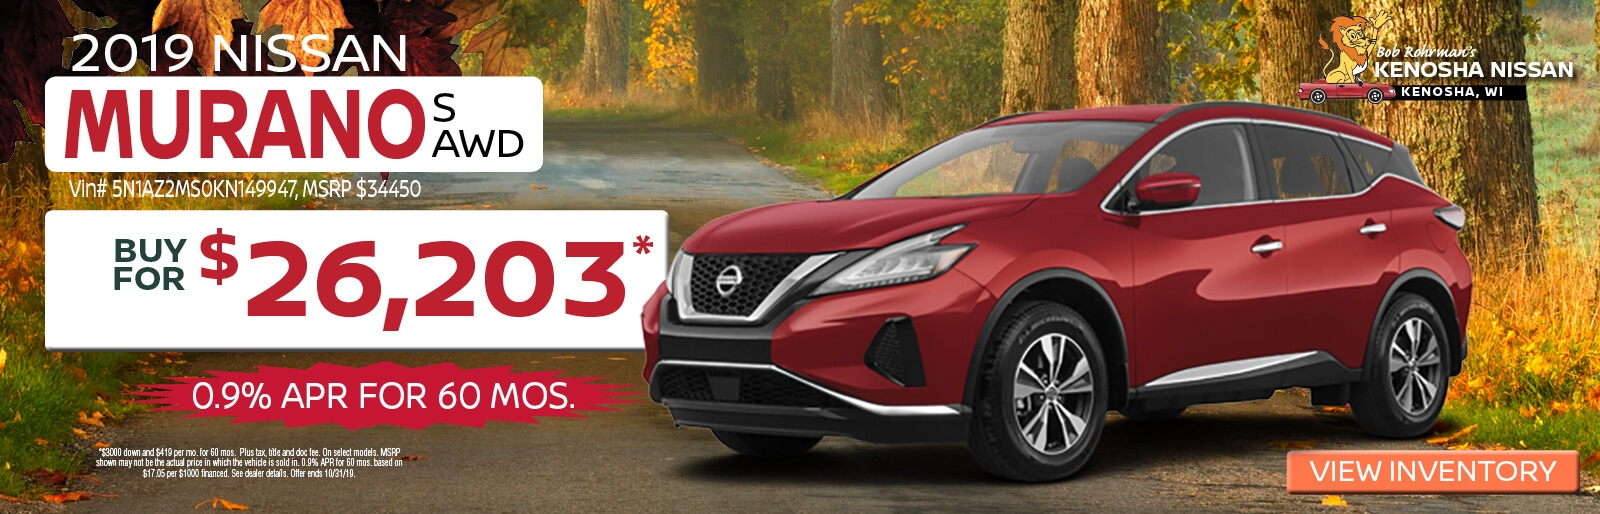 Buy a 2019 Nissan Murano S for $26,203